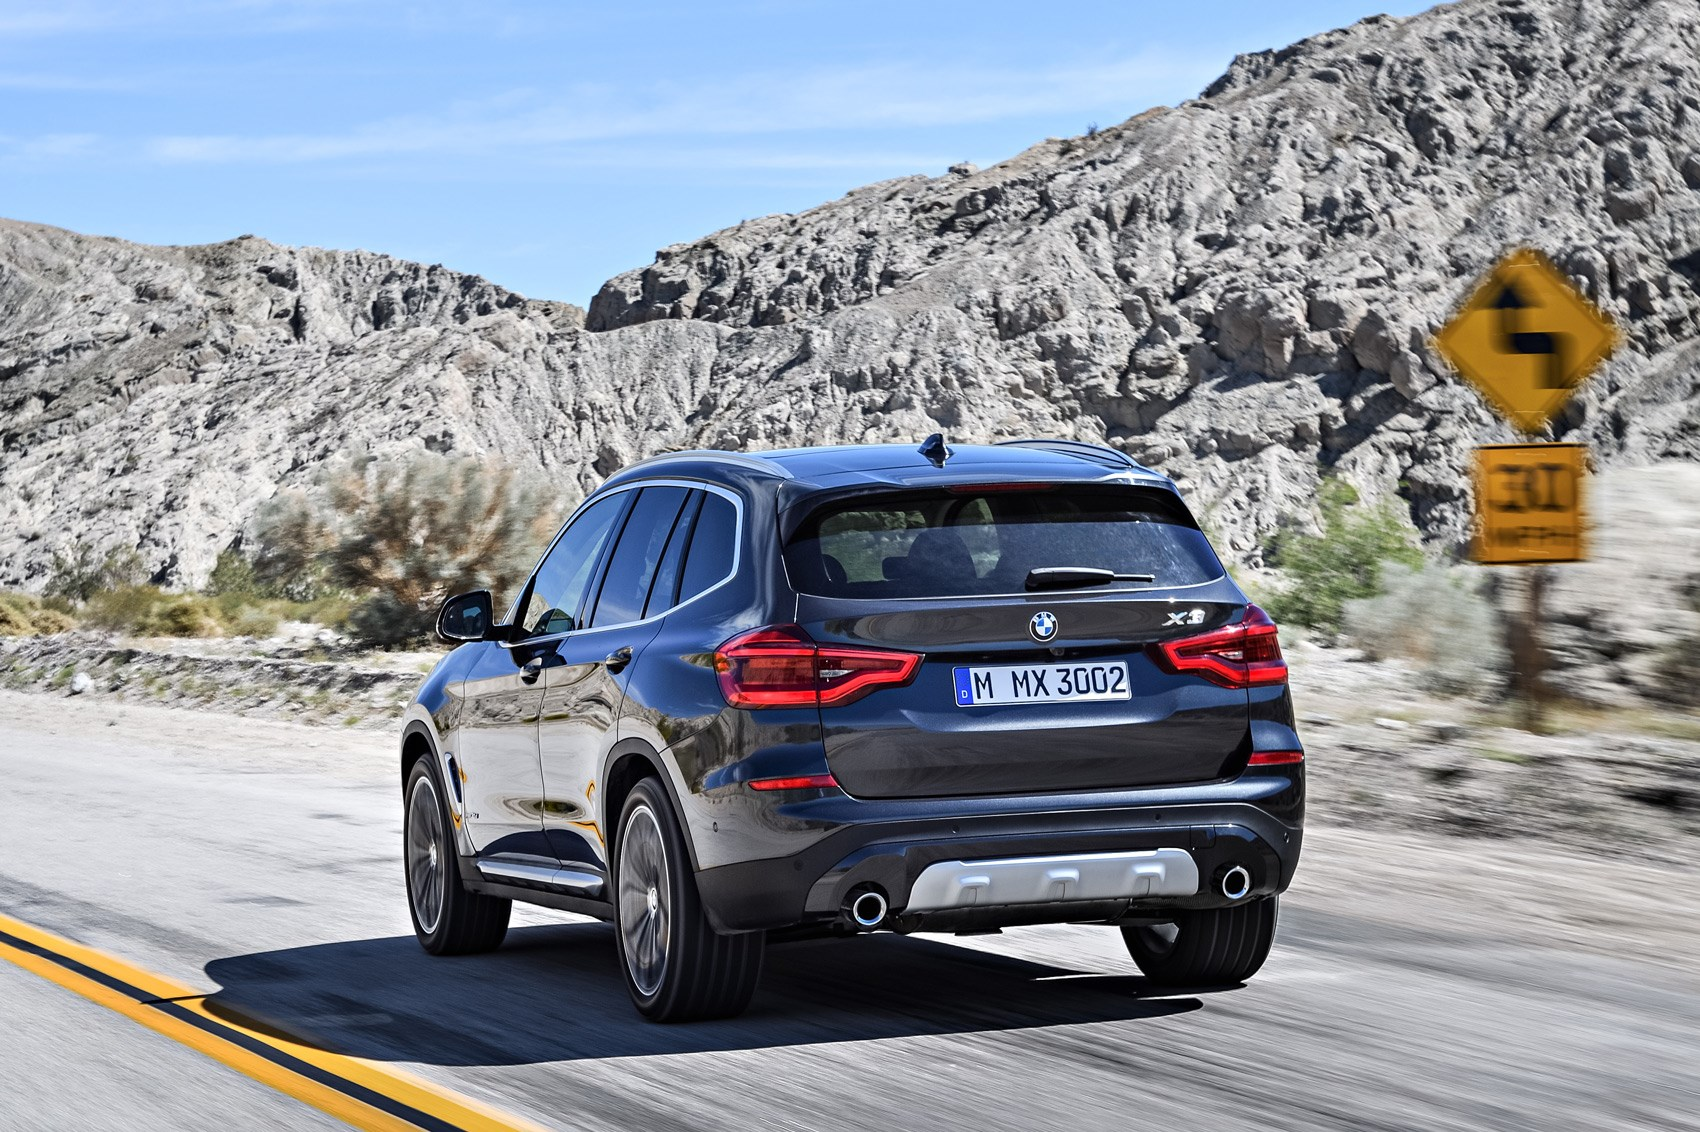 new bmw x3 suv revealed munich 39 s photocopier is working fine car magazine. Black Bedroom Furniture Sets. Home Design Ideas